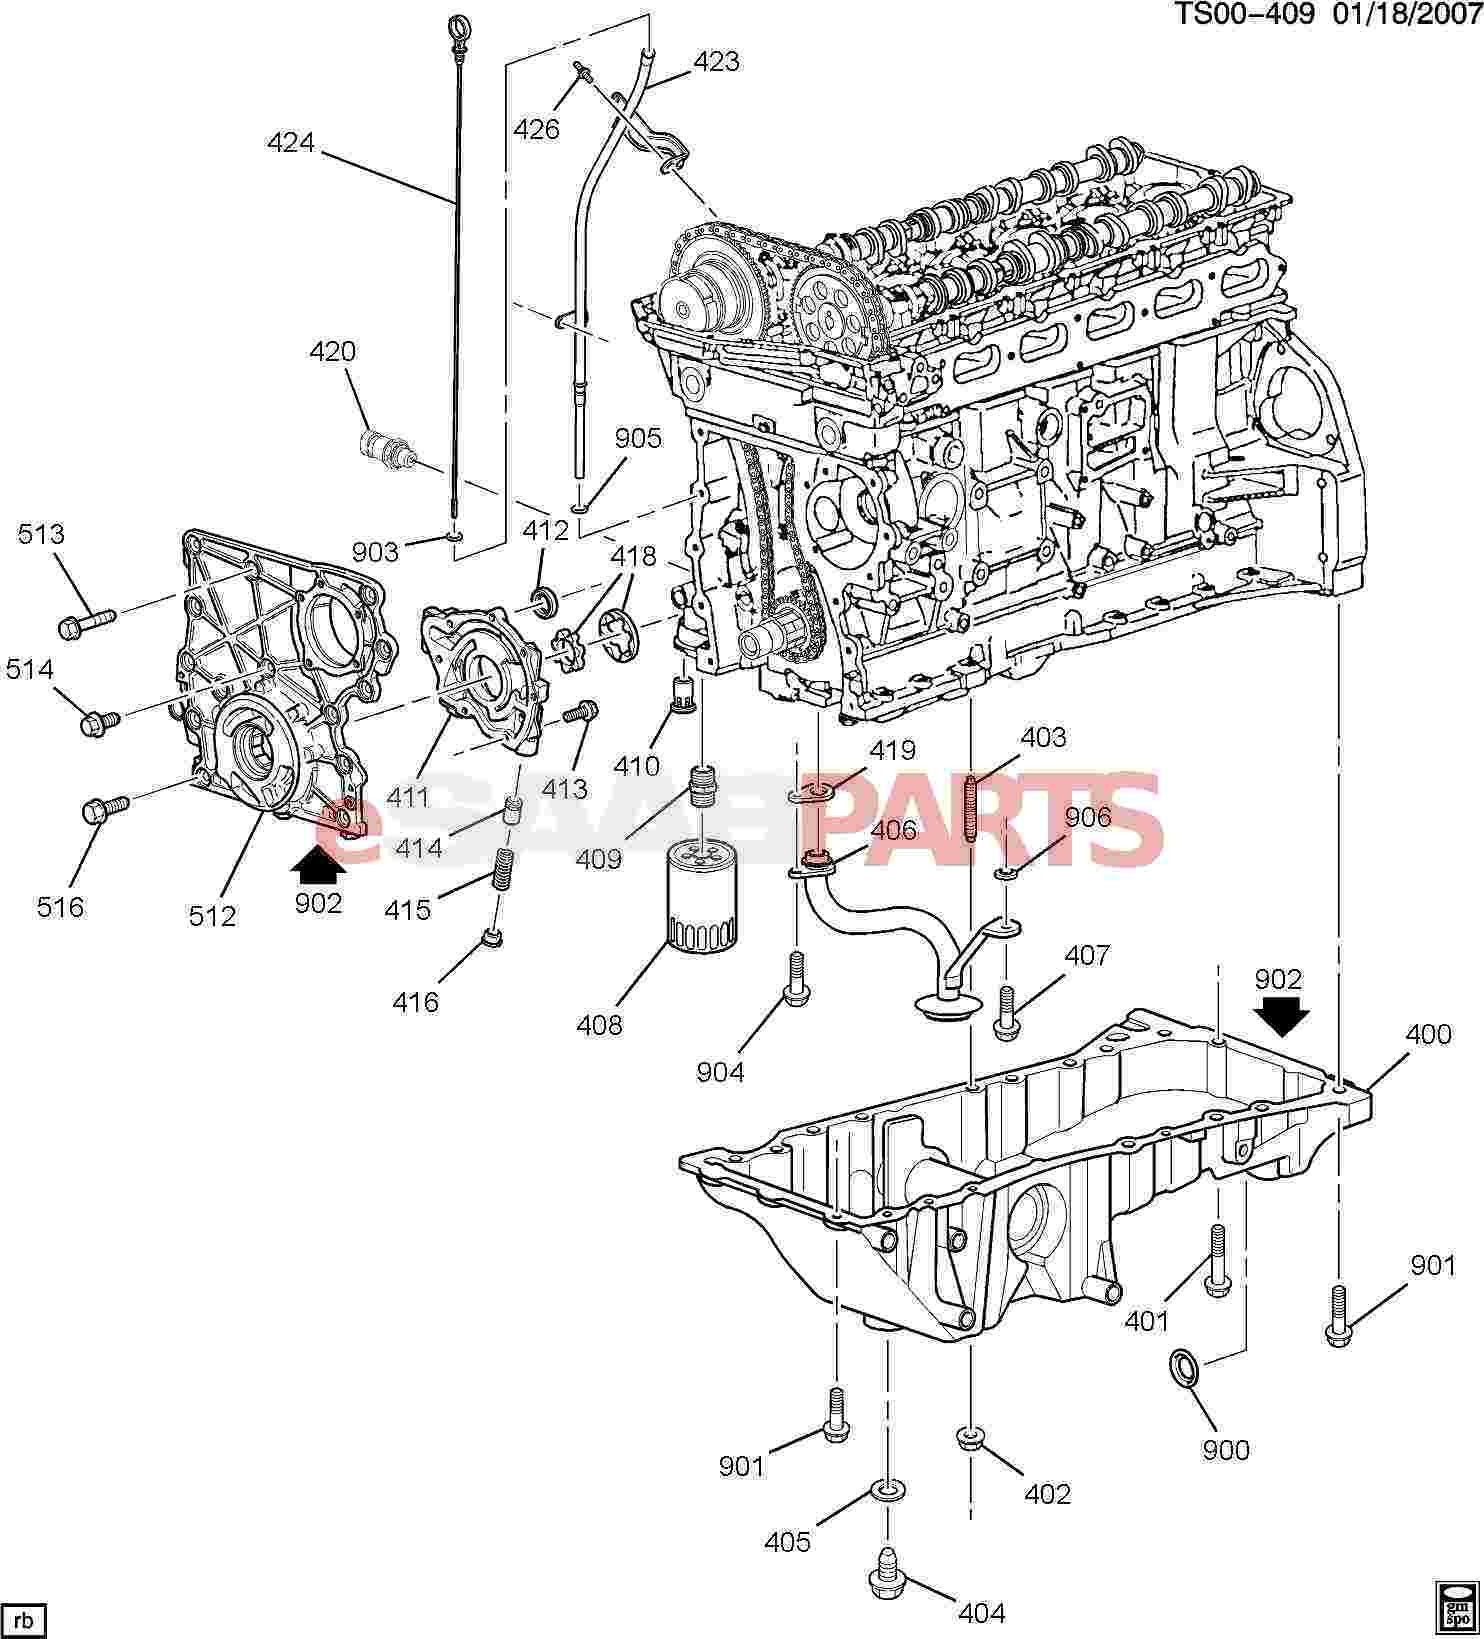 saab oil diagram application wiring diagram u2022 rh cleanairclub co 2002  Saab 9-3 Engine Diagram Saab 9 3 Turbo Parts